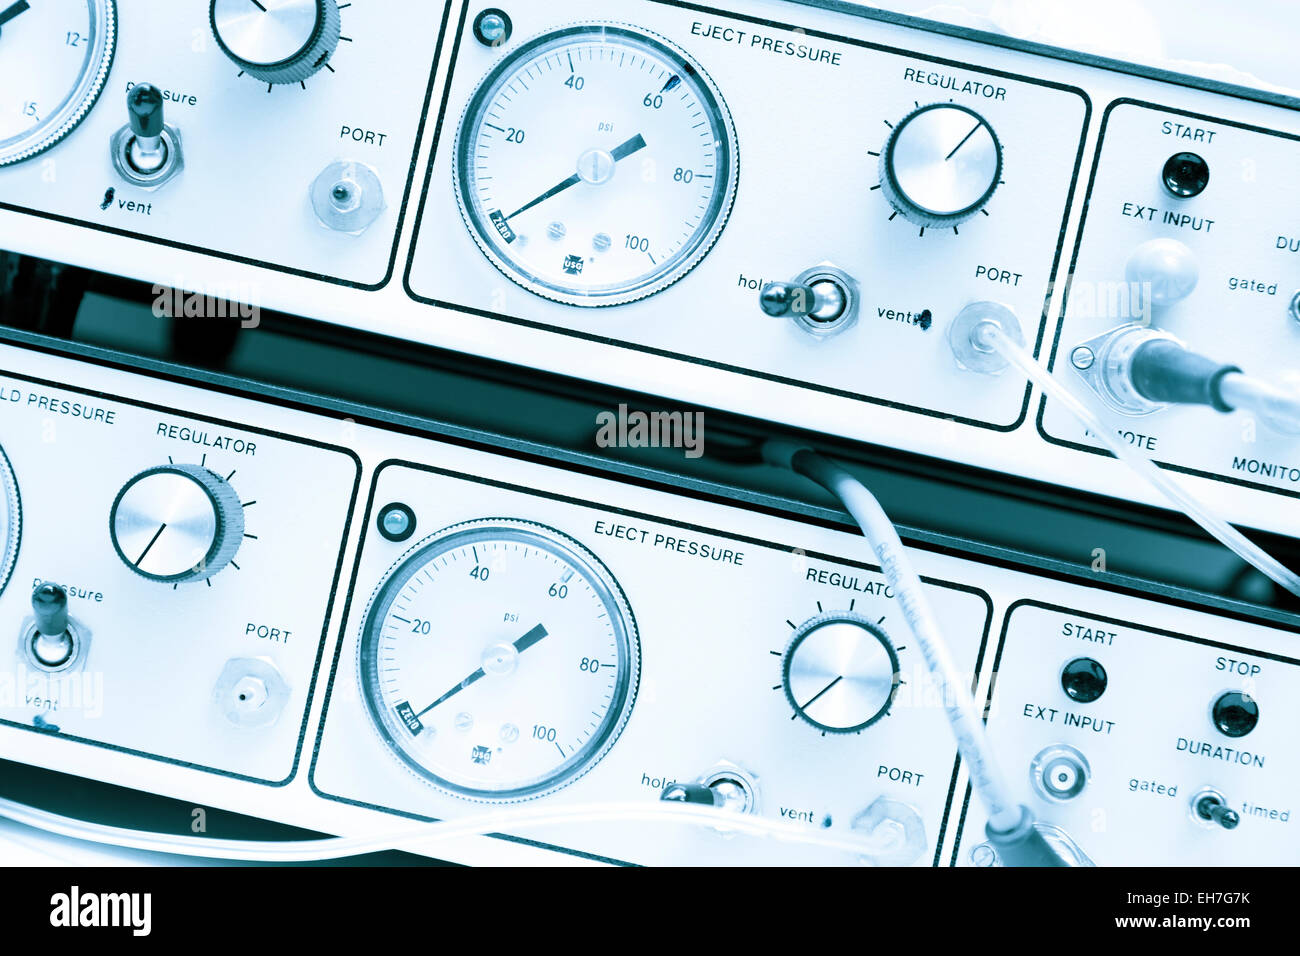 Control panel with dials - Stock Image